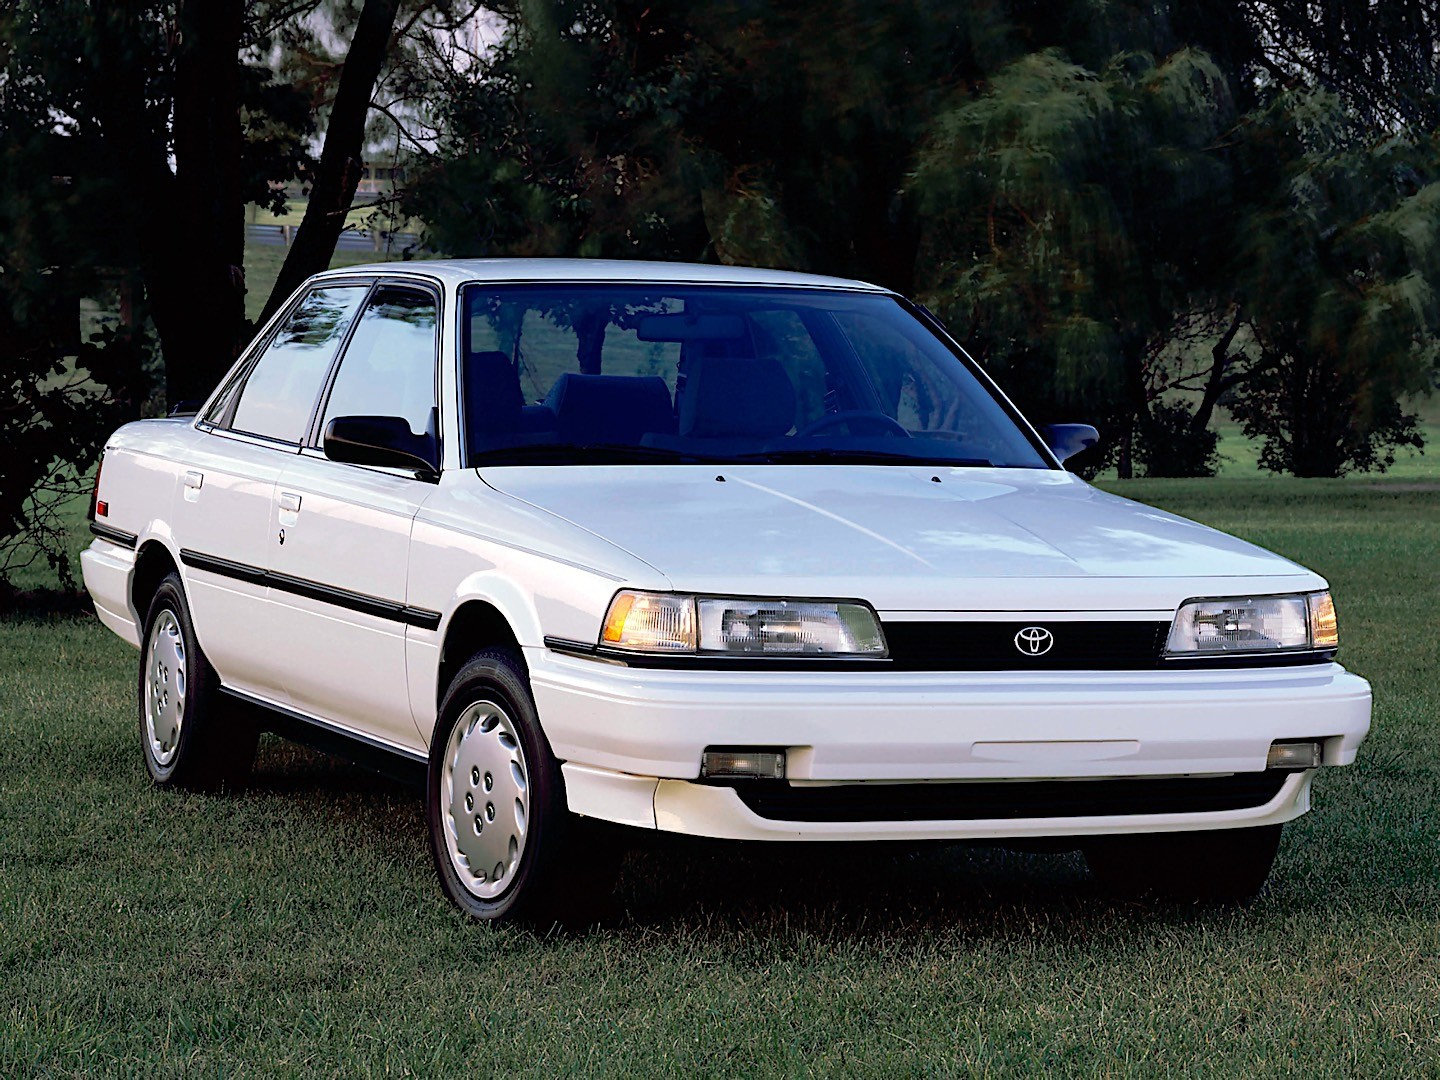 TOYOTA Camry specs & photos - 1987, 1988, 1989, 1990, 1991 - autoevolution